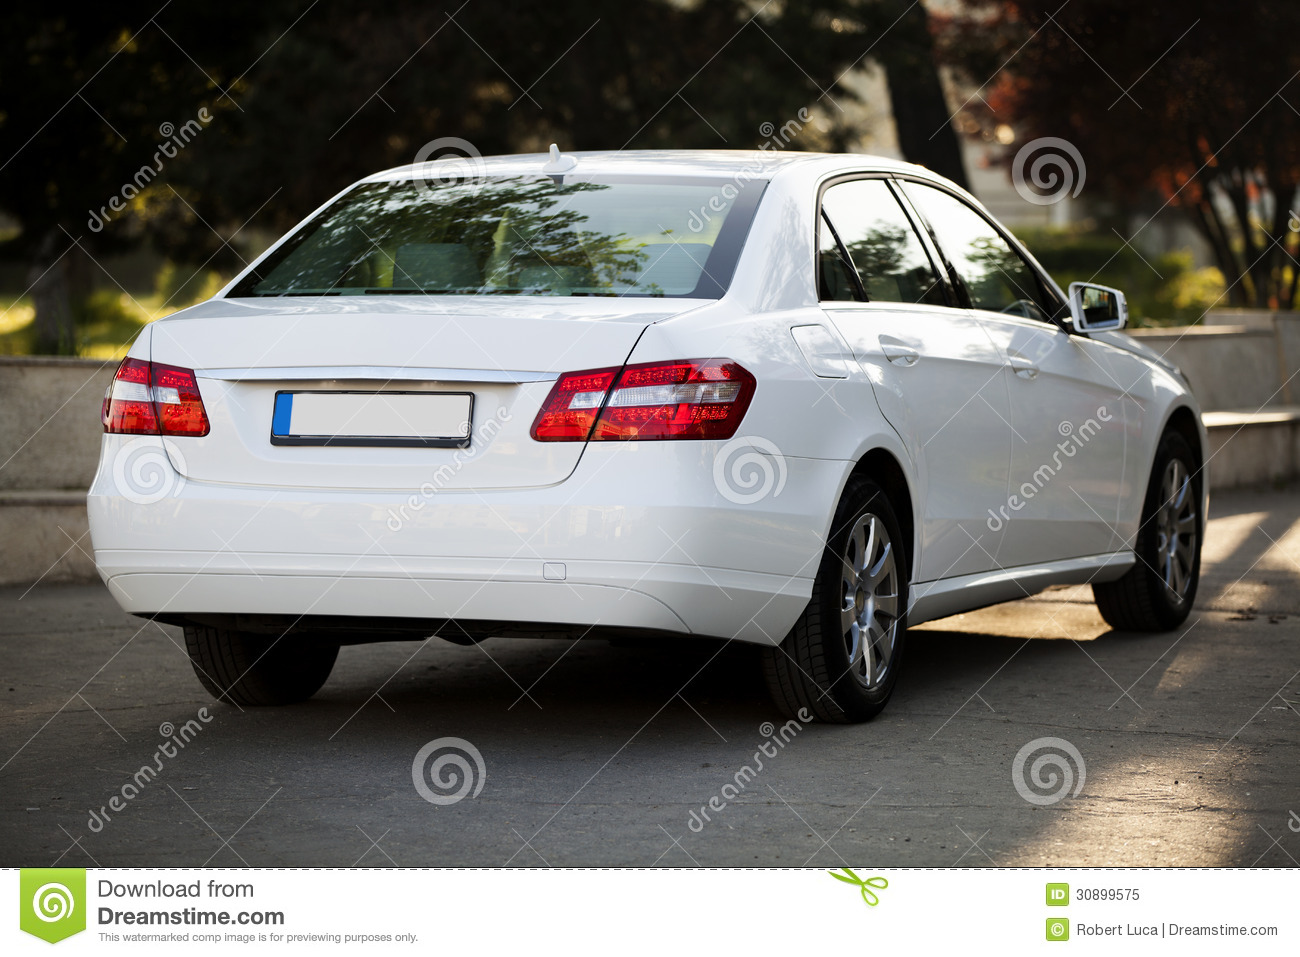 Mercedes benz e class model royalty free stock photo for Mercedes benz brand image